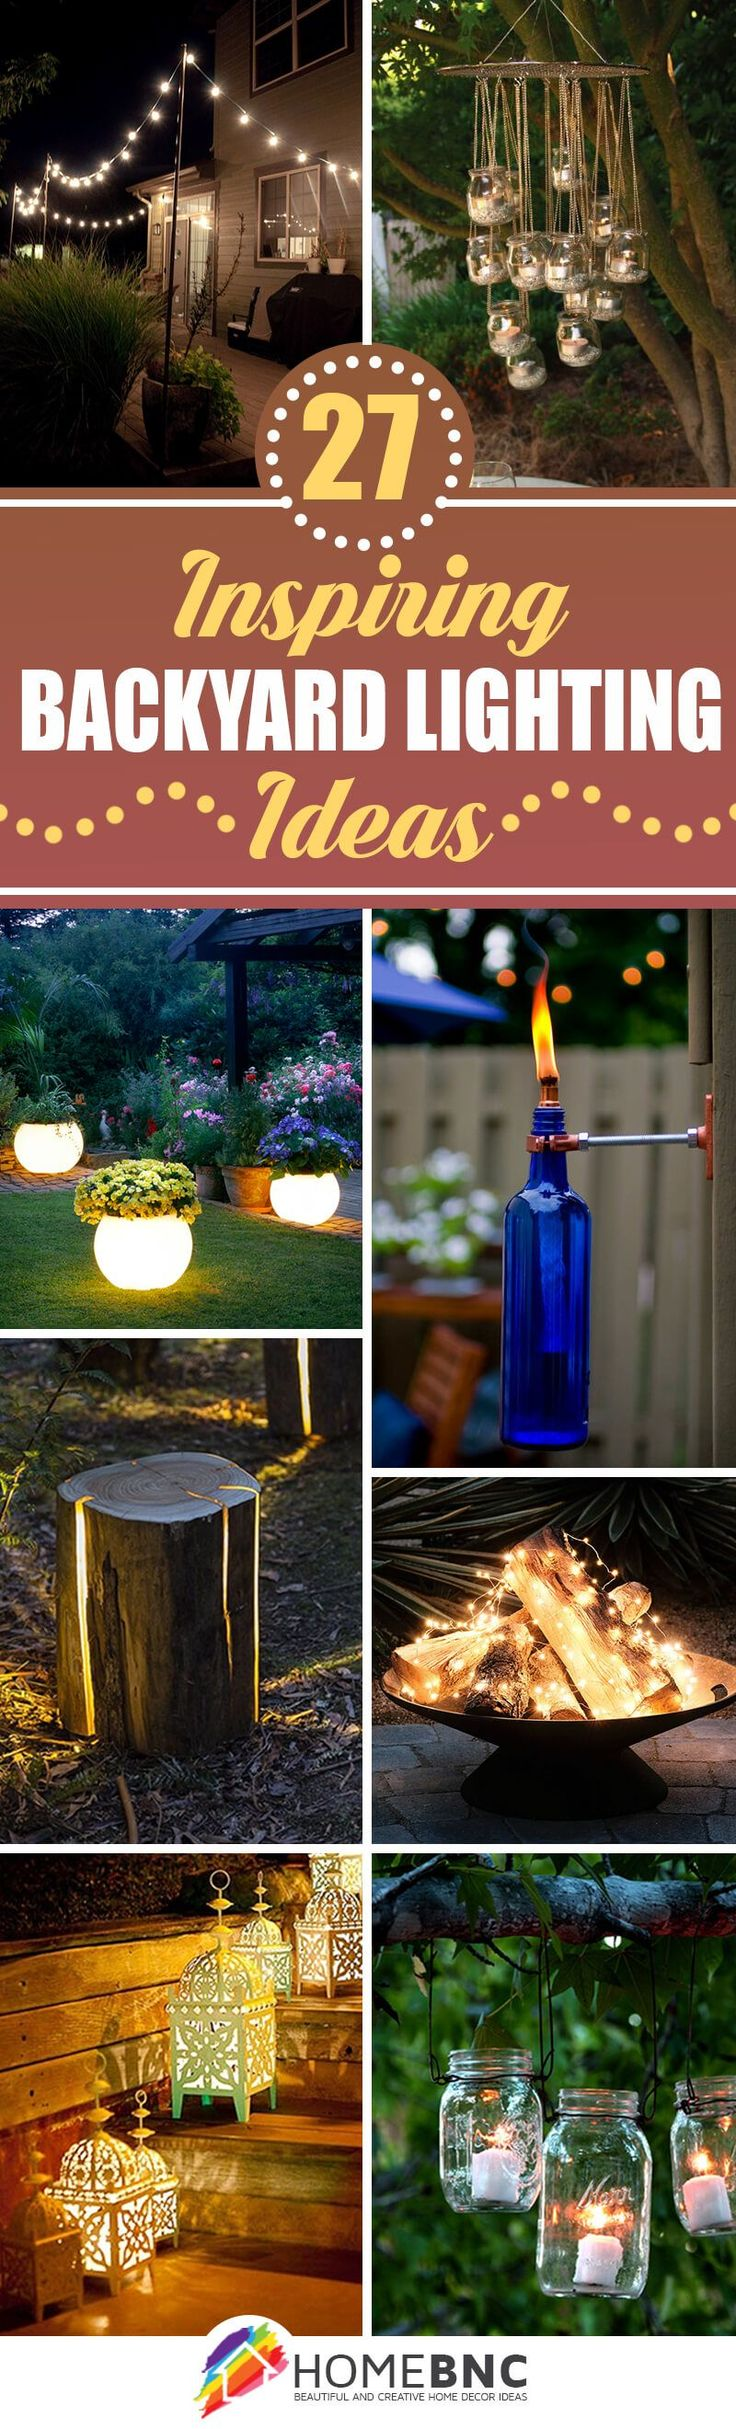 Best 25+ Patio ideas ideas on Pinterest | Backyard makeover ...